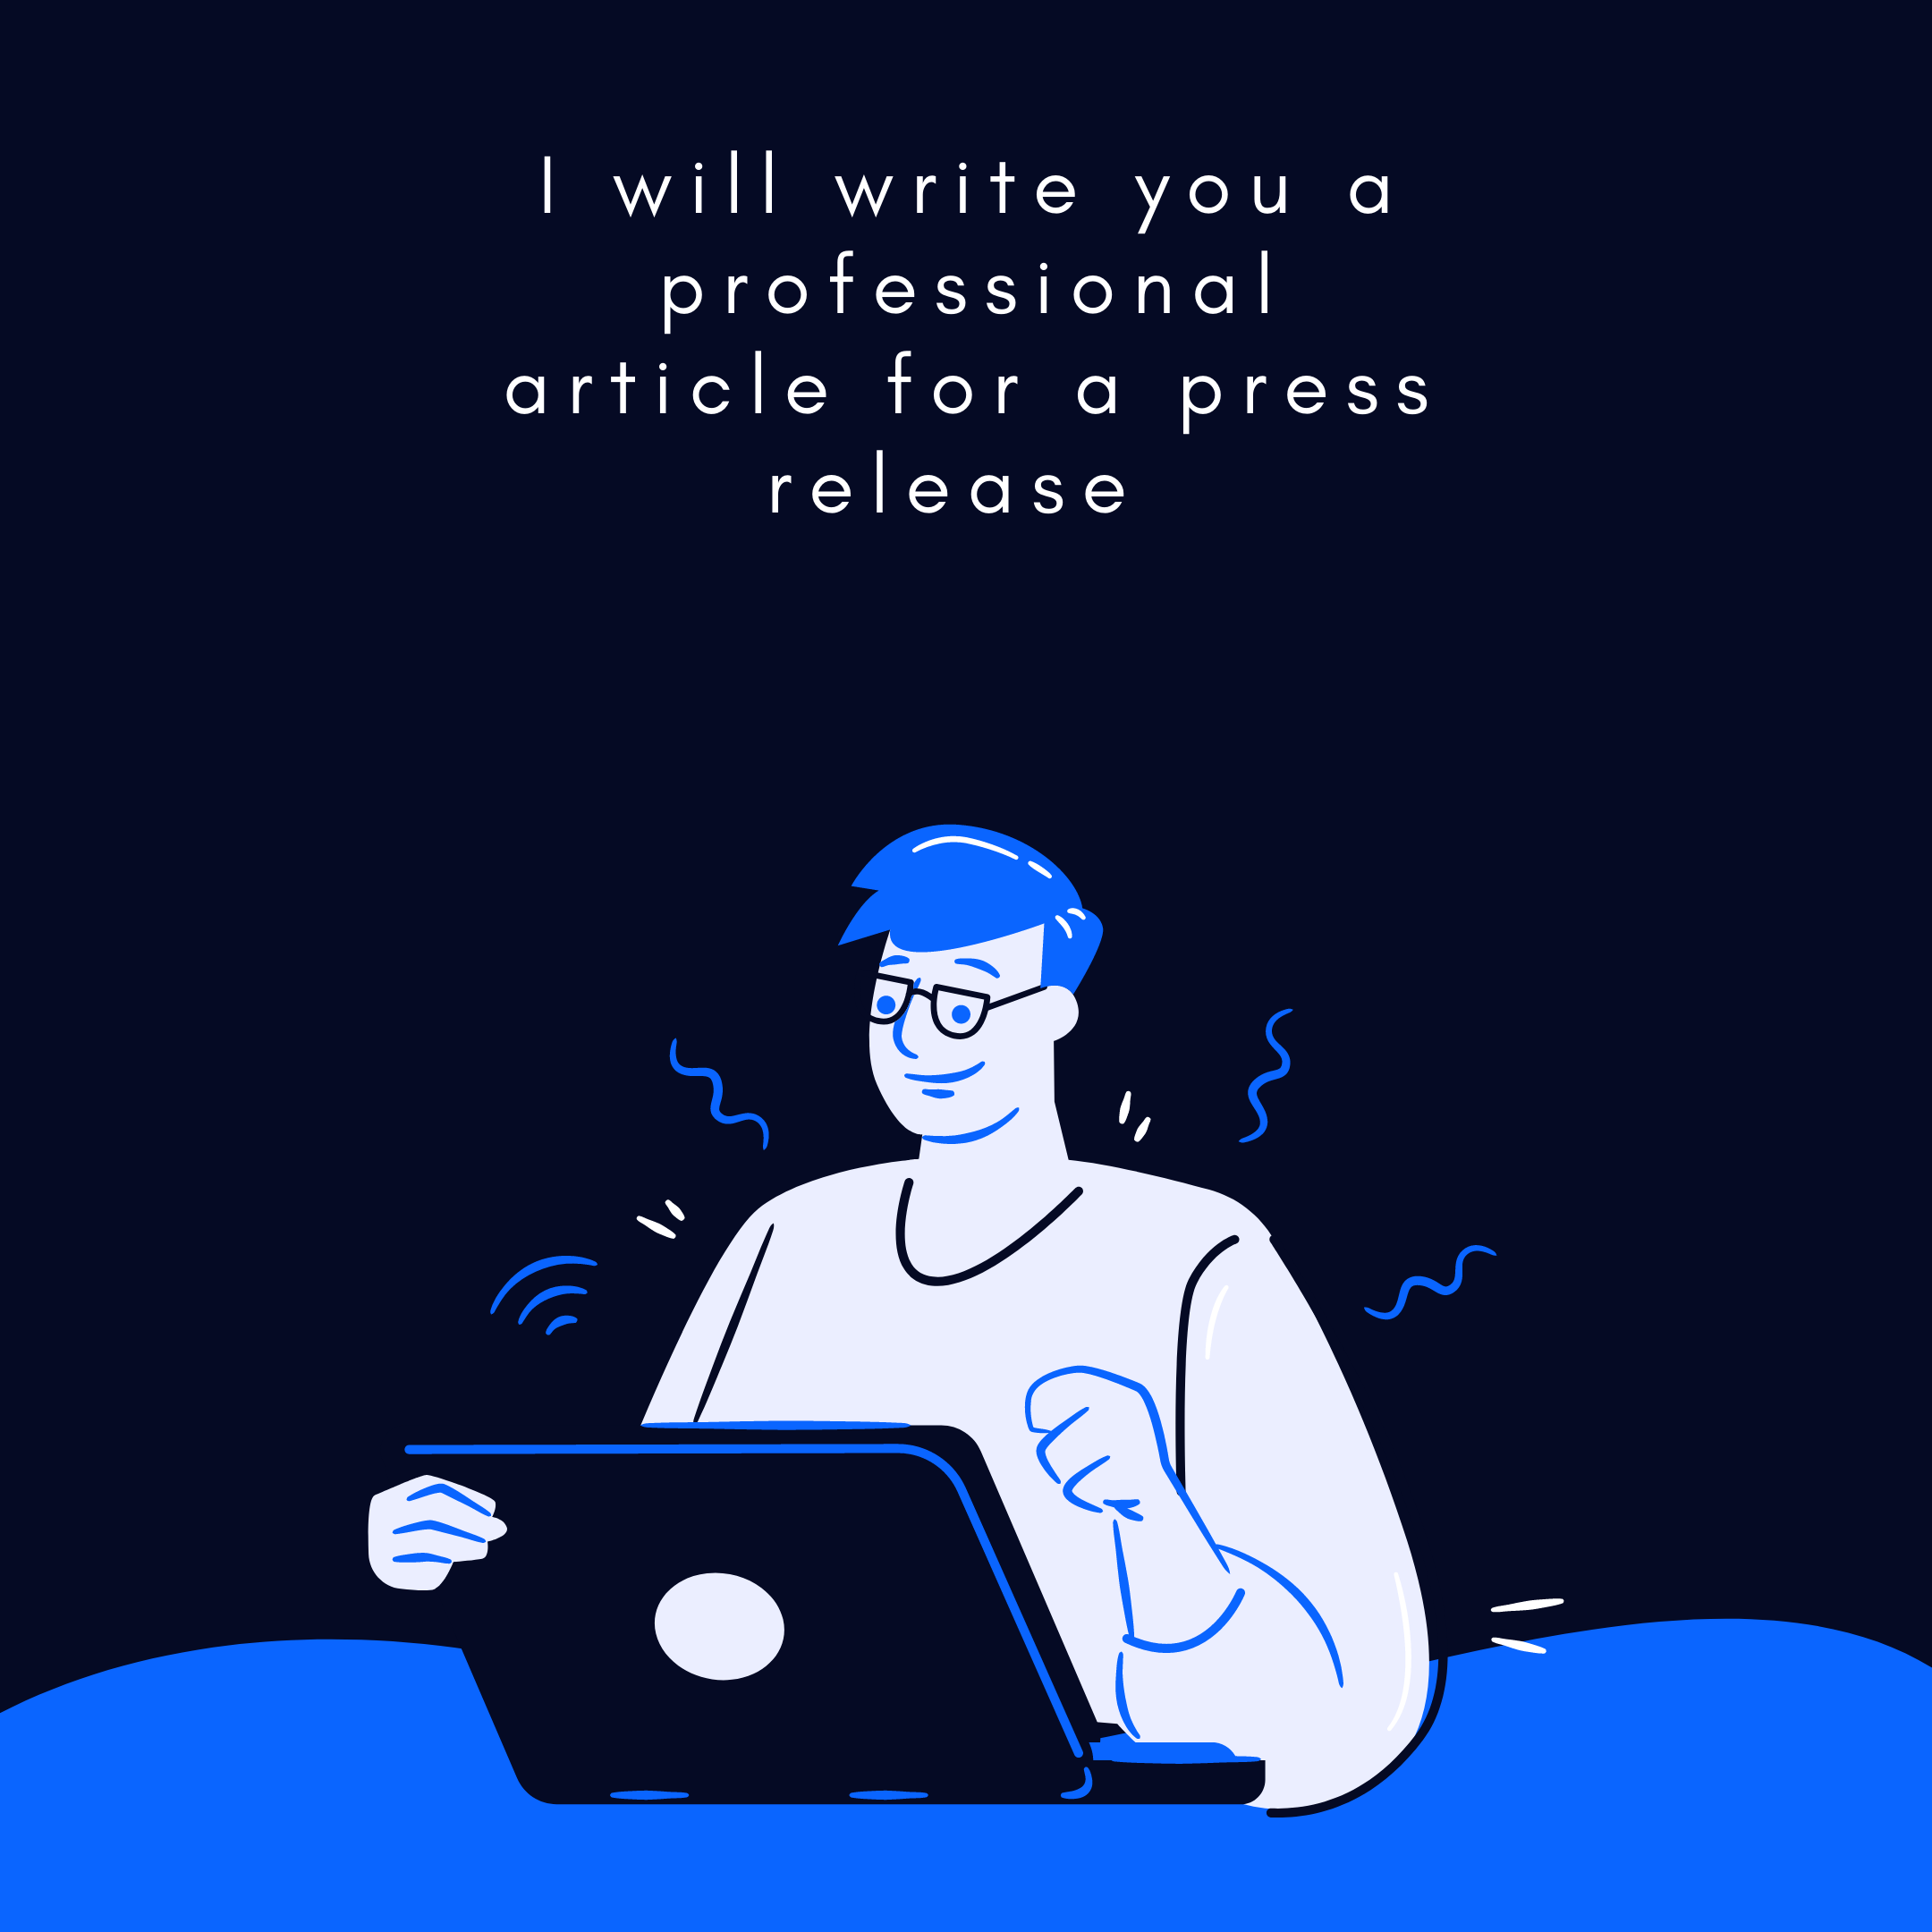 I will write an amazing article for your press release